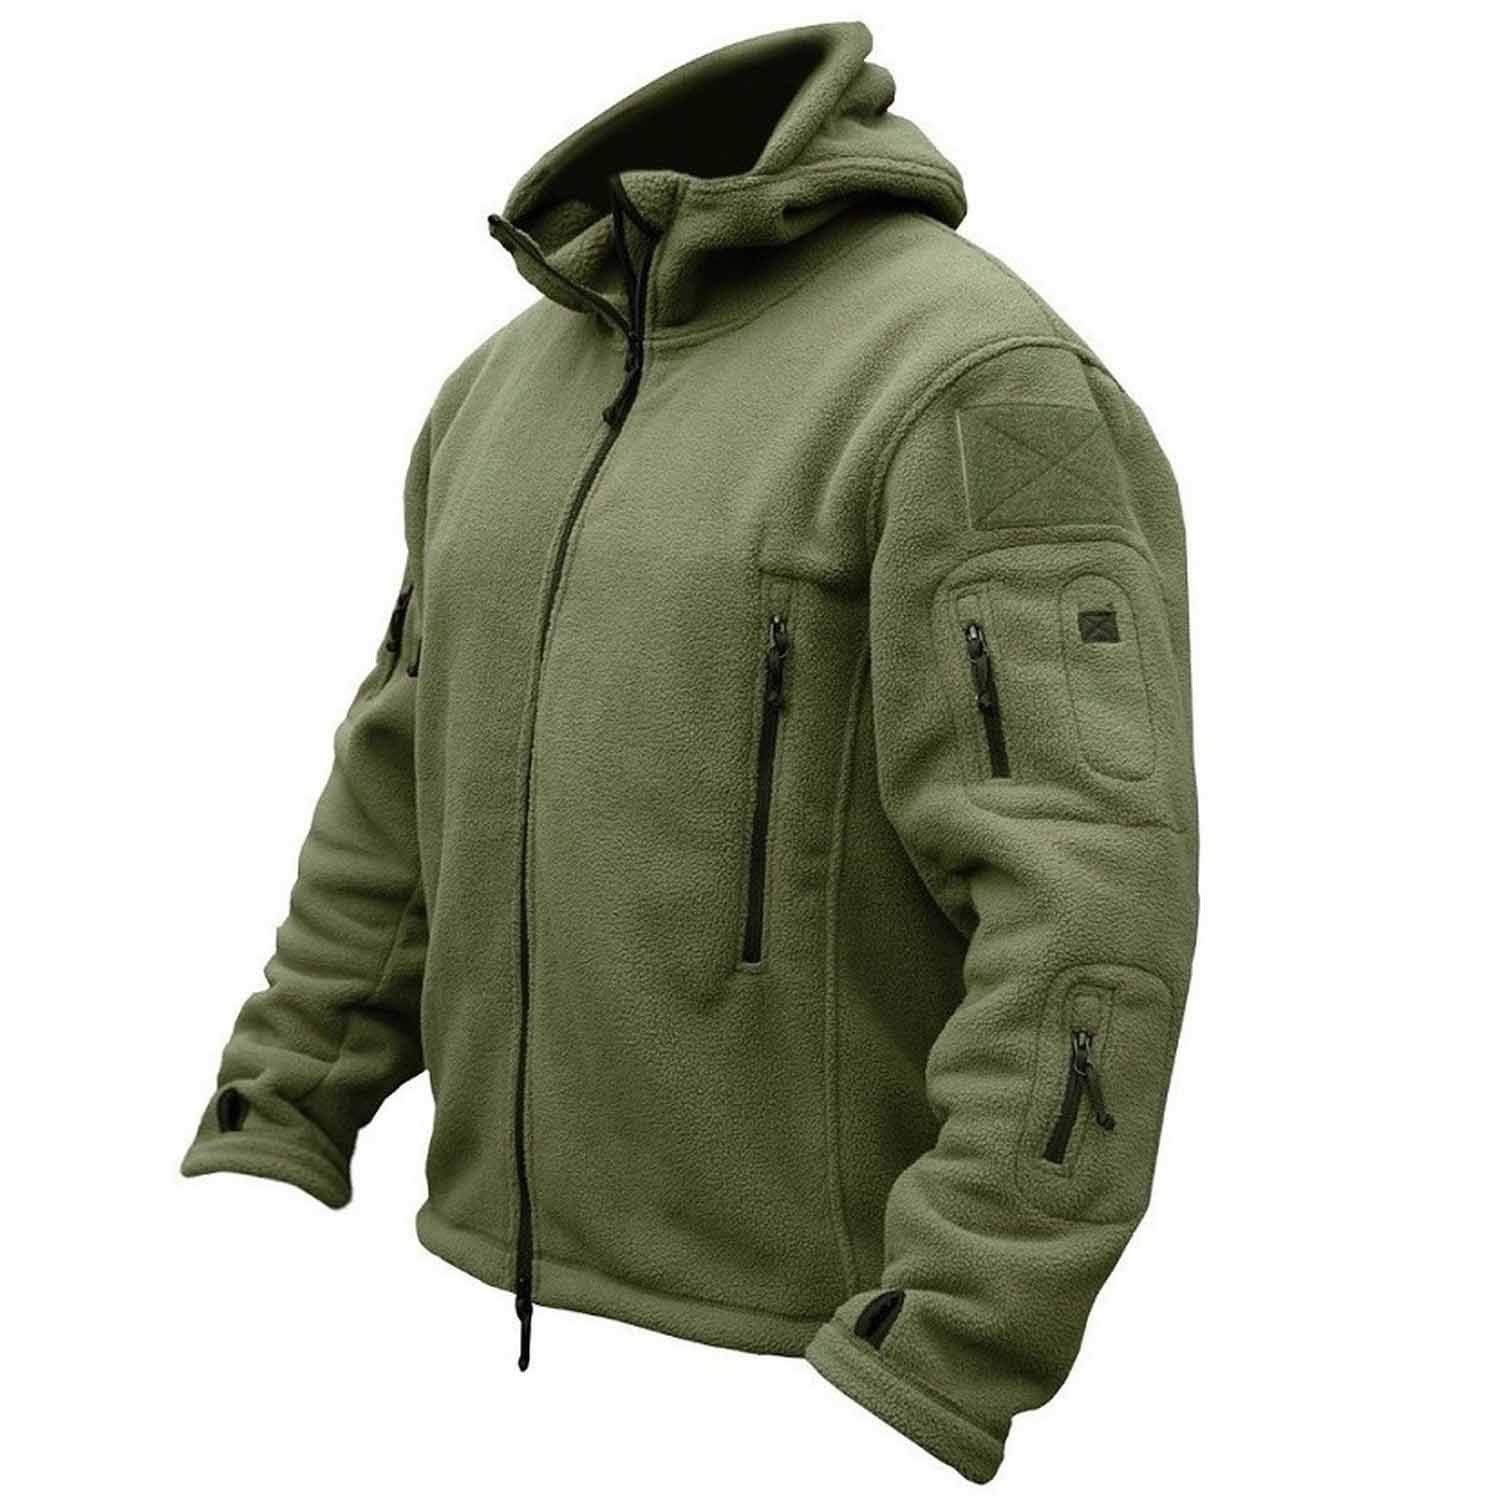 Amazon.com: Stay With Me Jacket Men Autumn Camouflage Coat ...